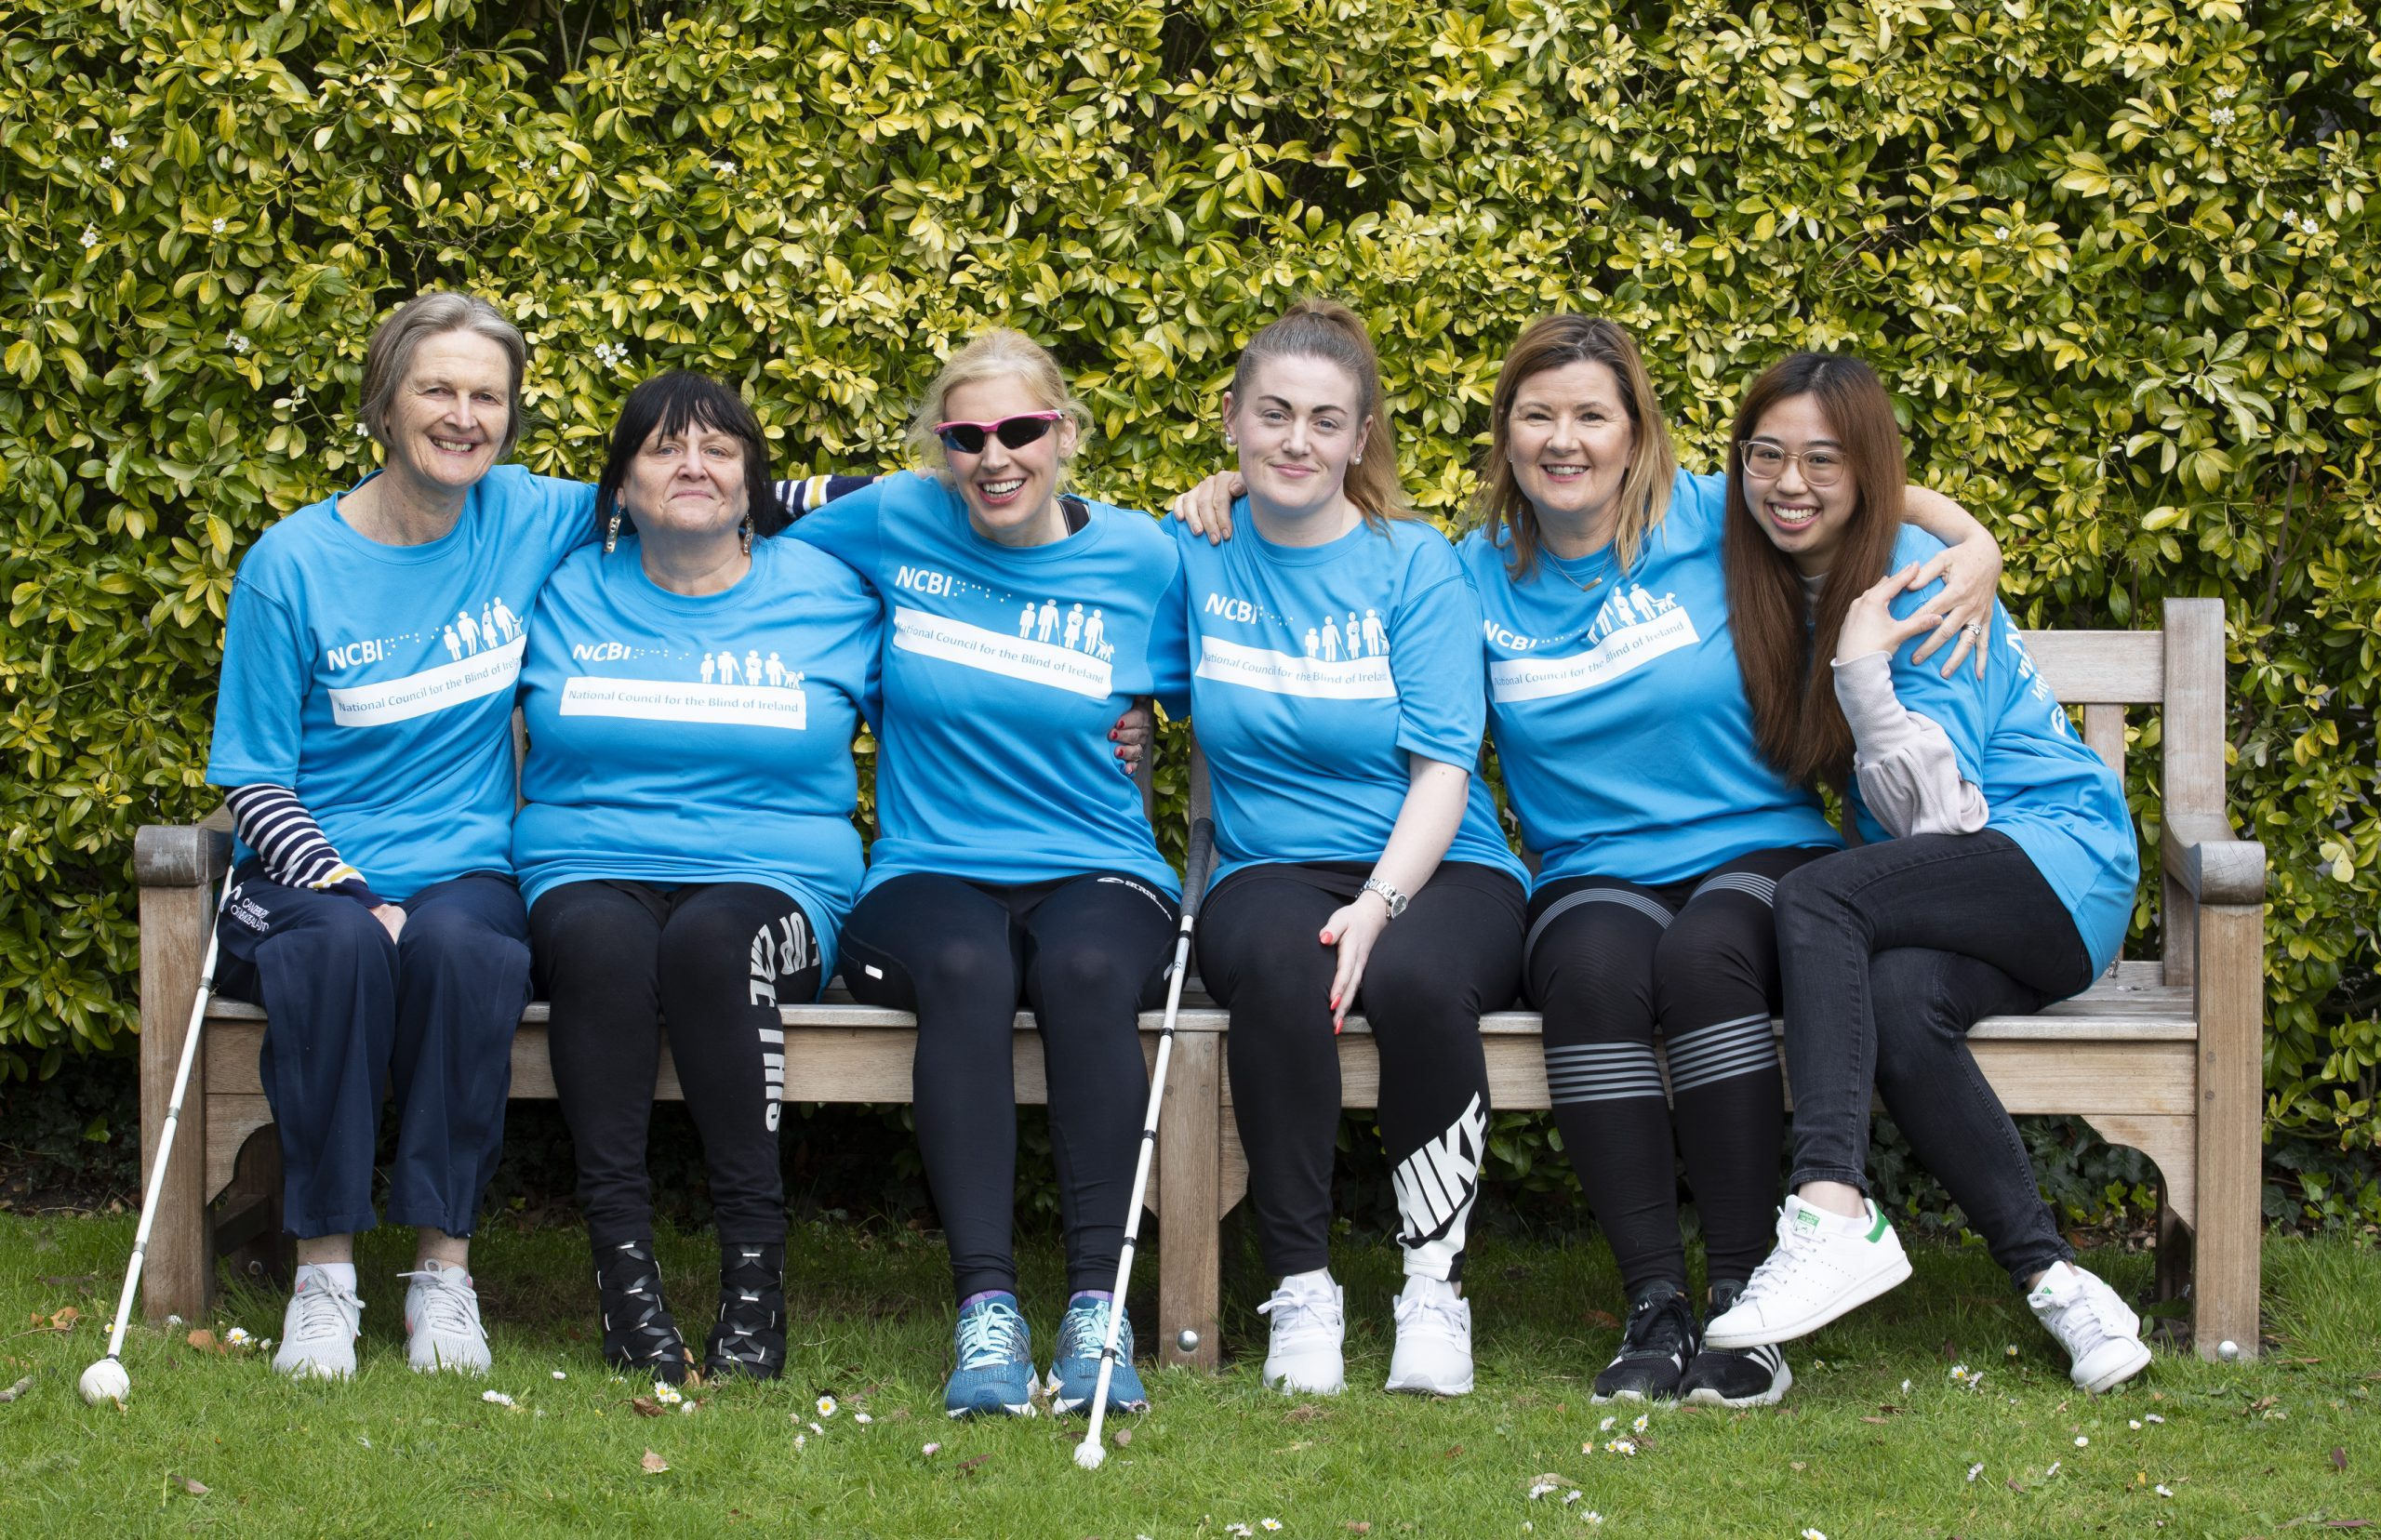 Various NCBI team members in light blue running tops gather around Dr Sinead Kane on a sunny park bench and hold light-hearted stretch poses for the camera.